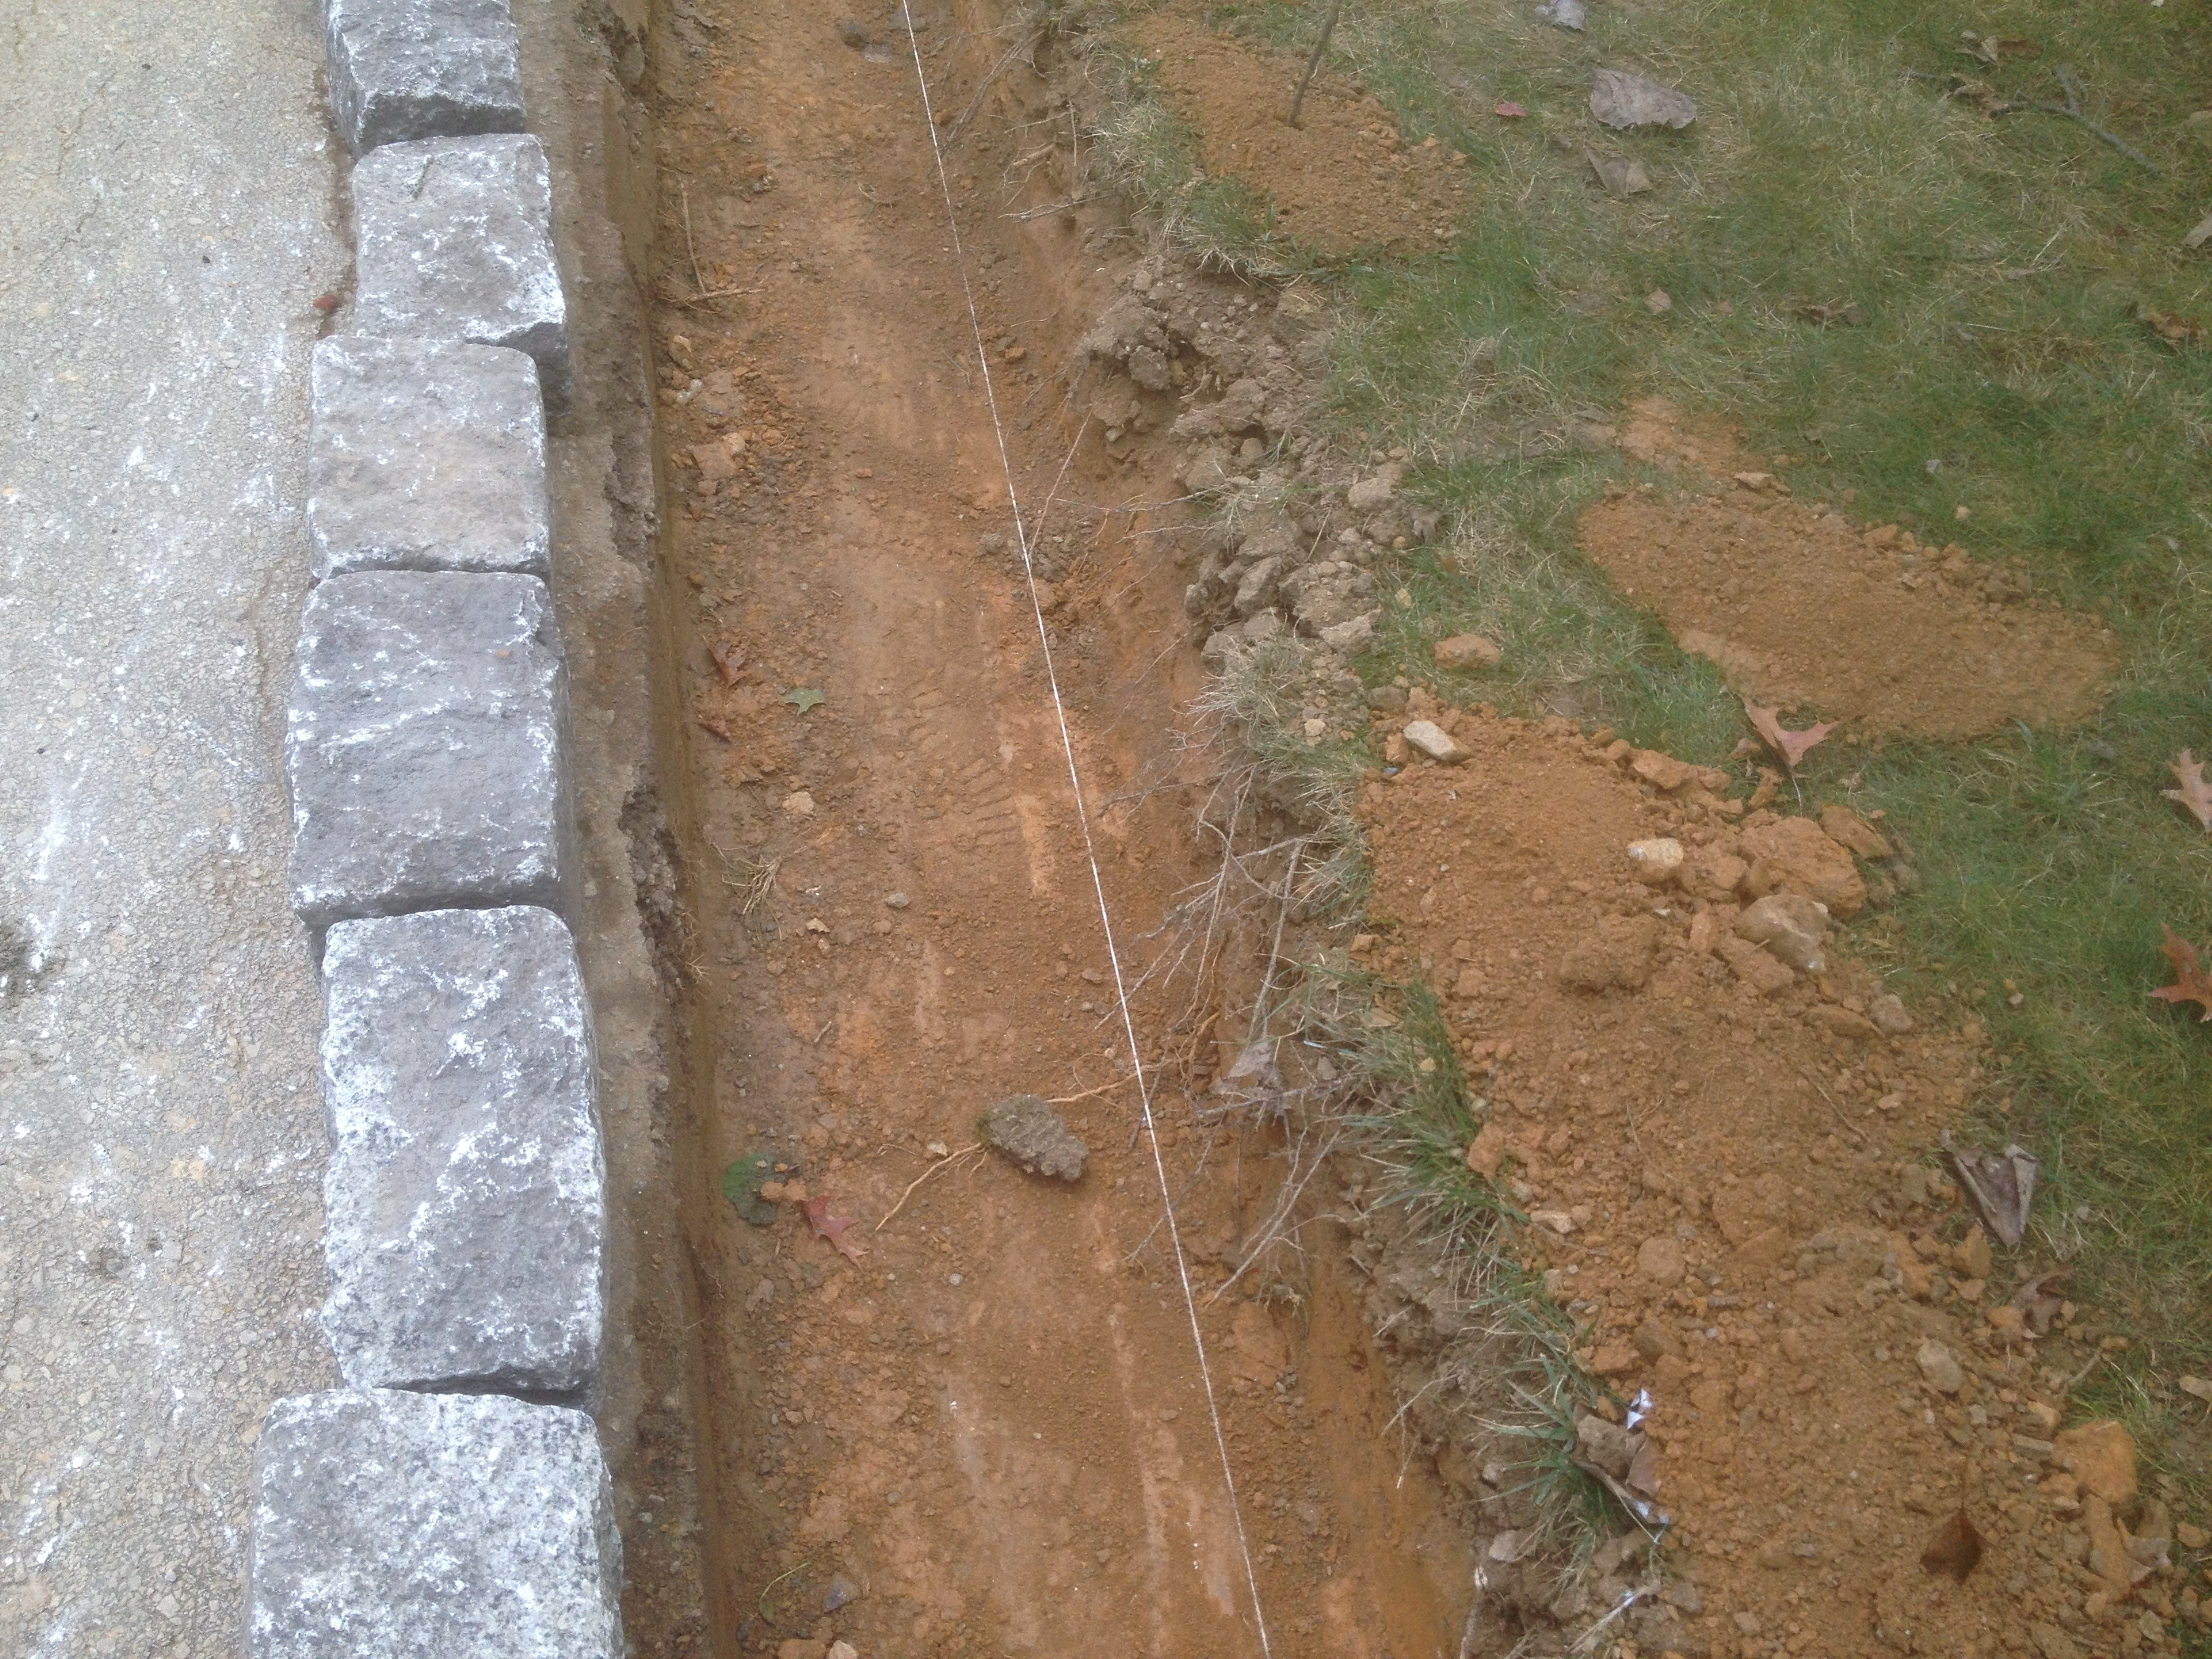 Excavation for cobblestone curb